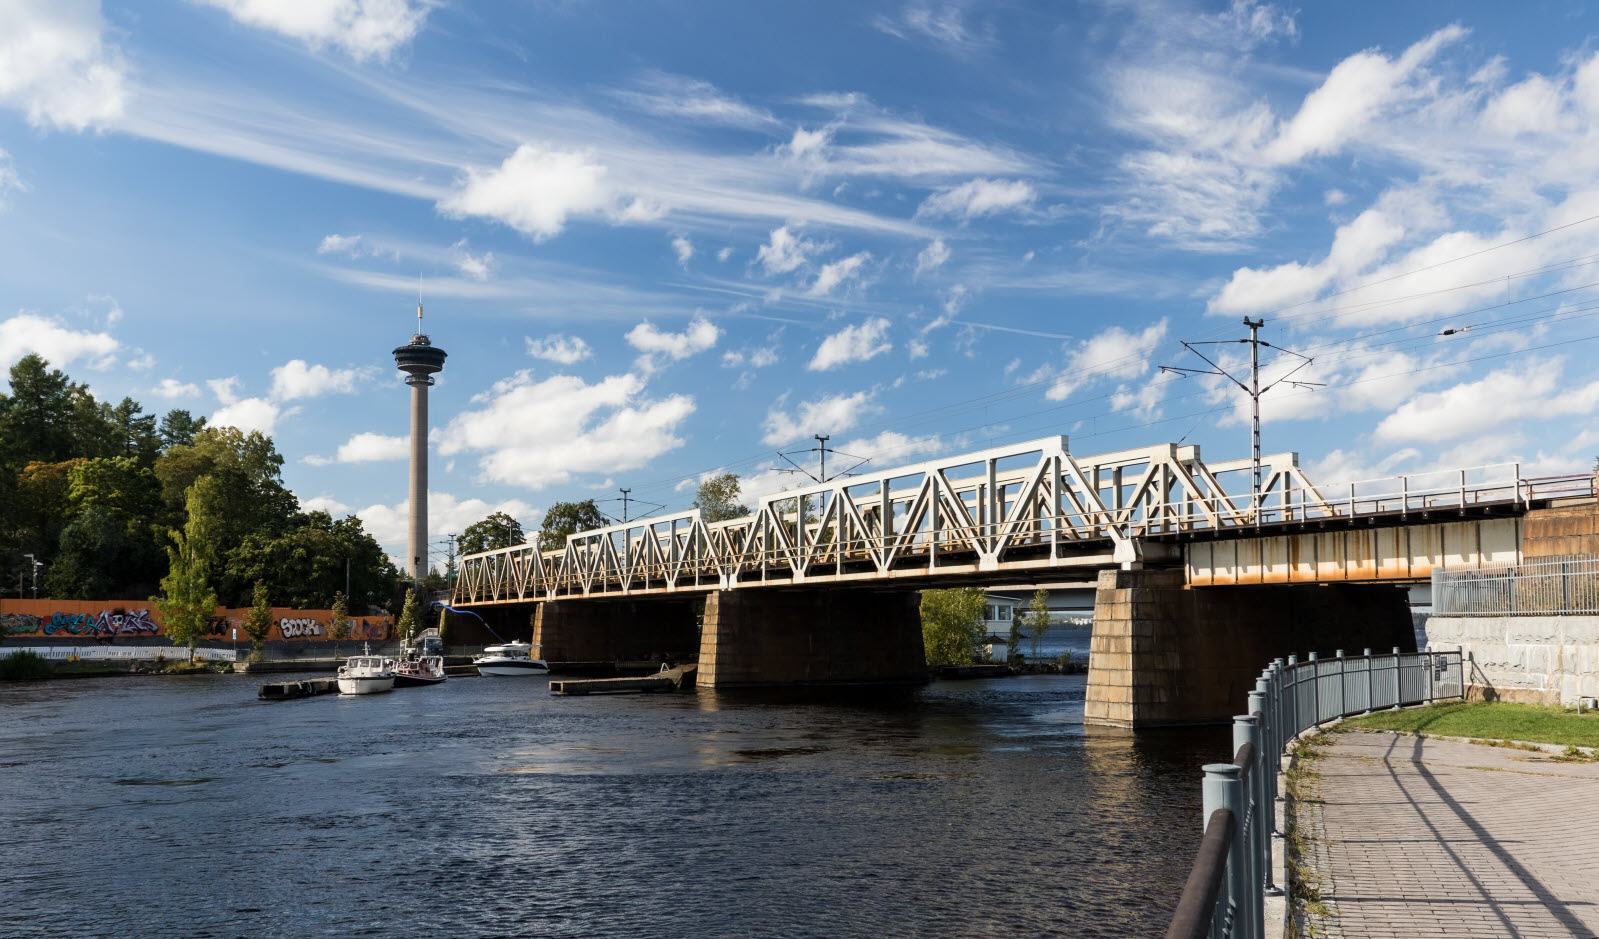 Finland and Tampere, Tammerkoski. A bridge over water.